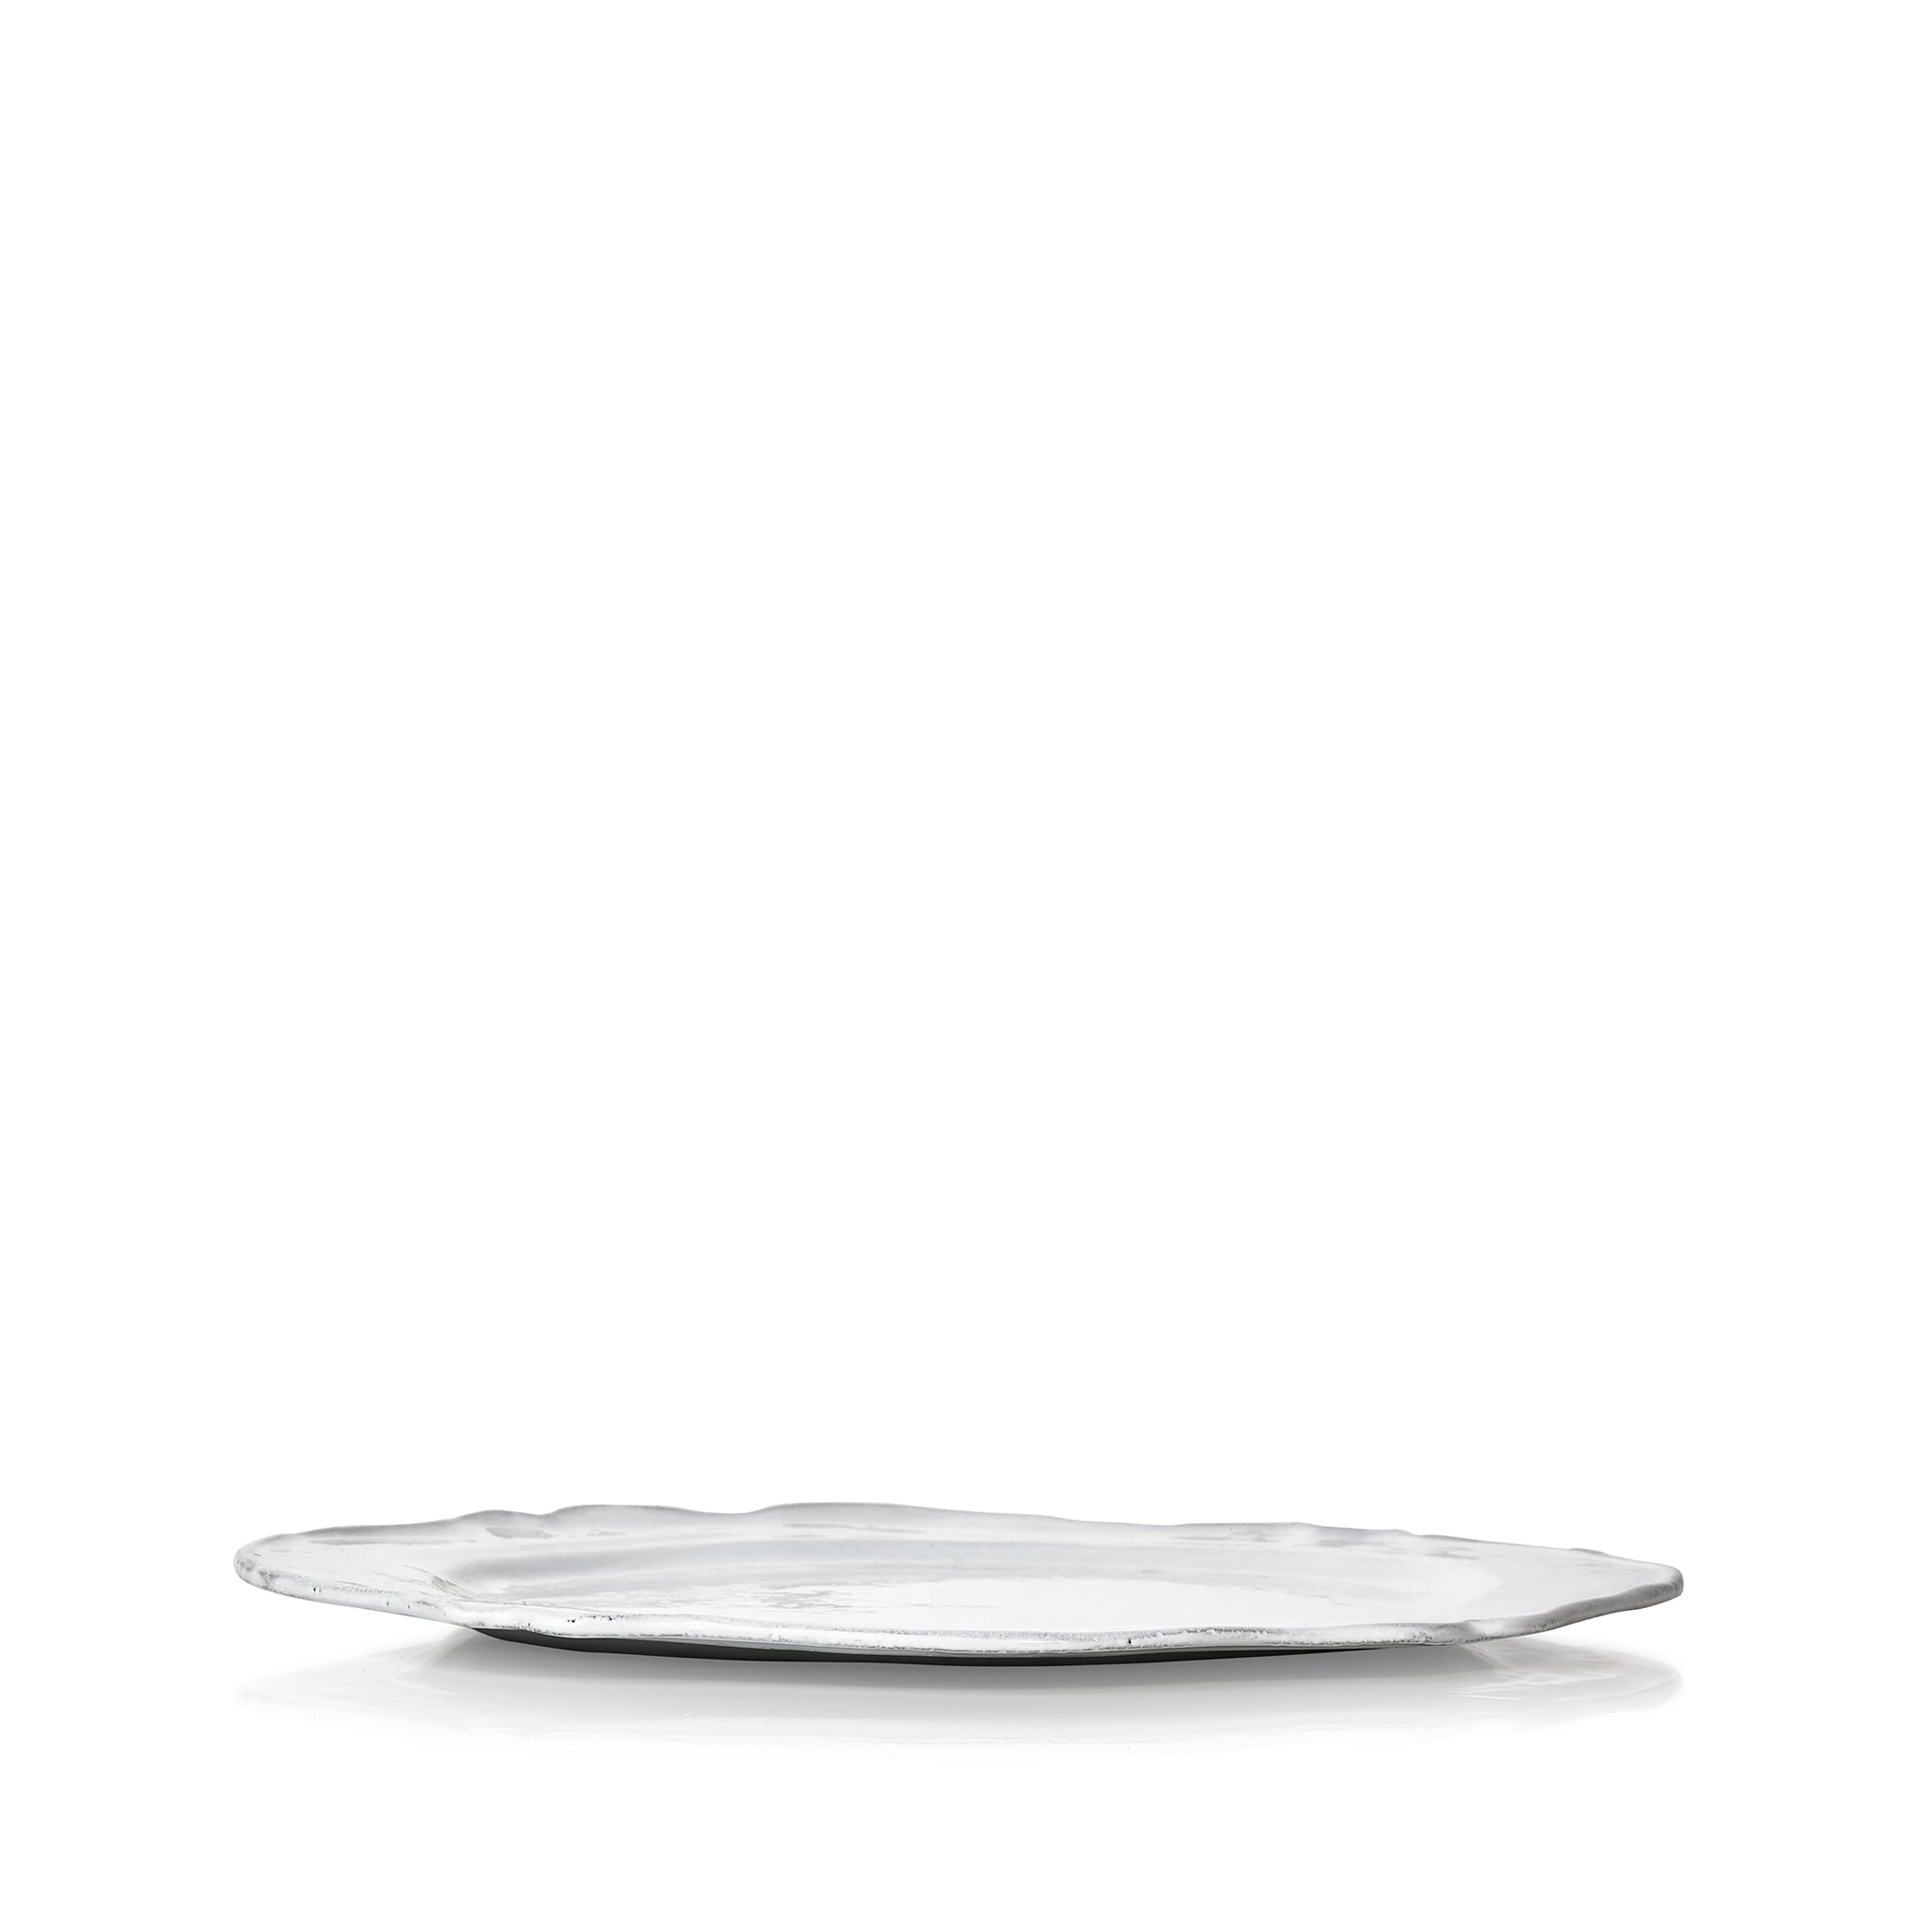 Bac Dinner Plate by Astier de Villatte